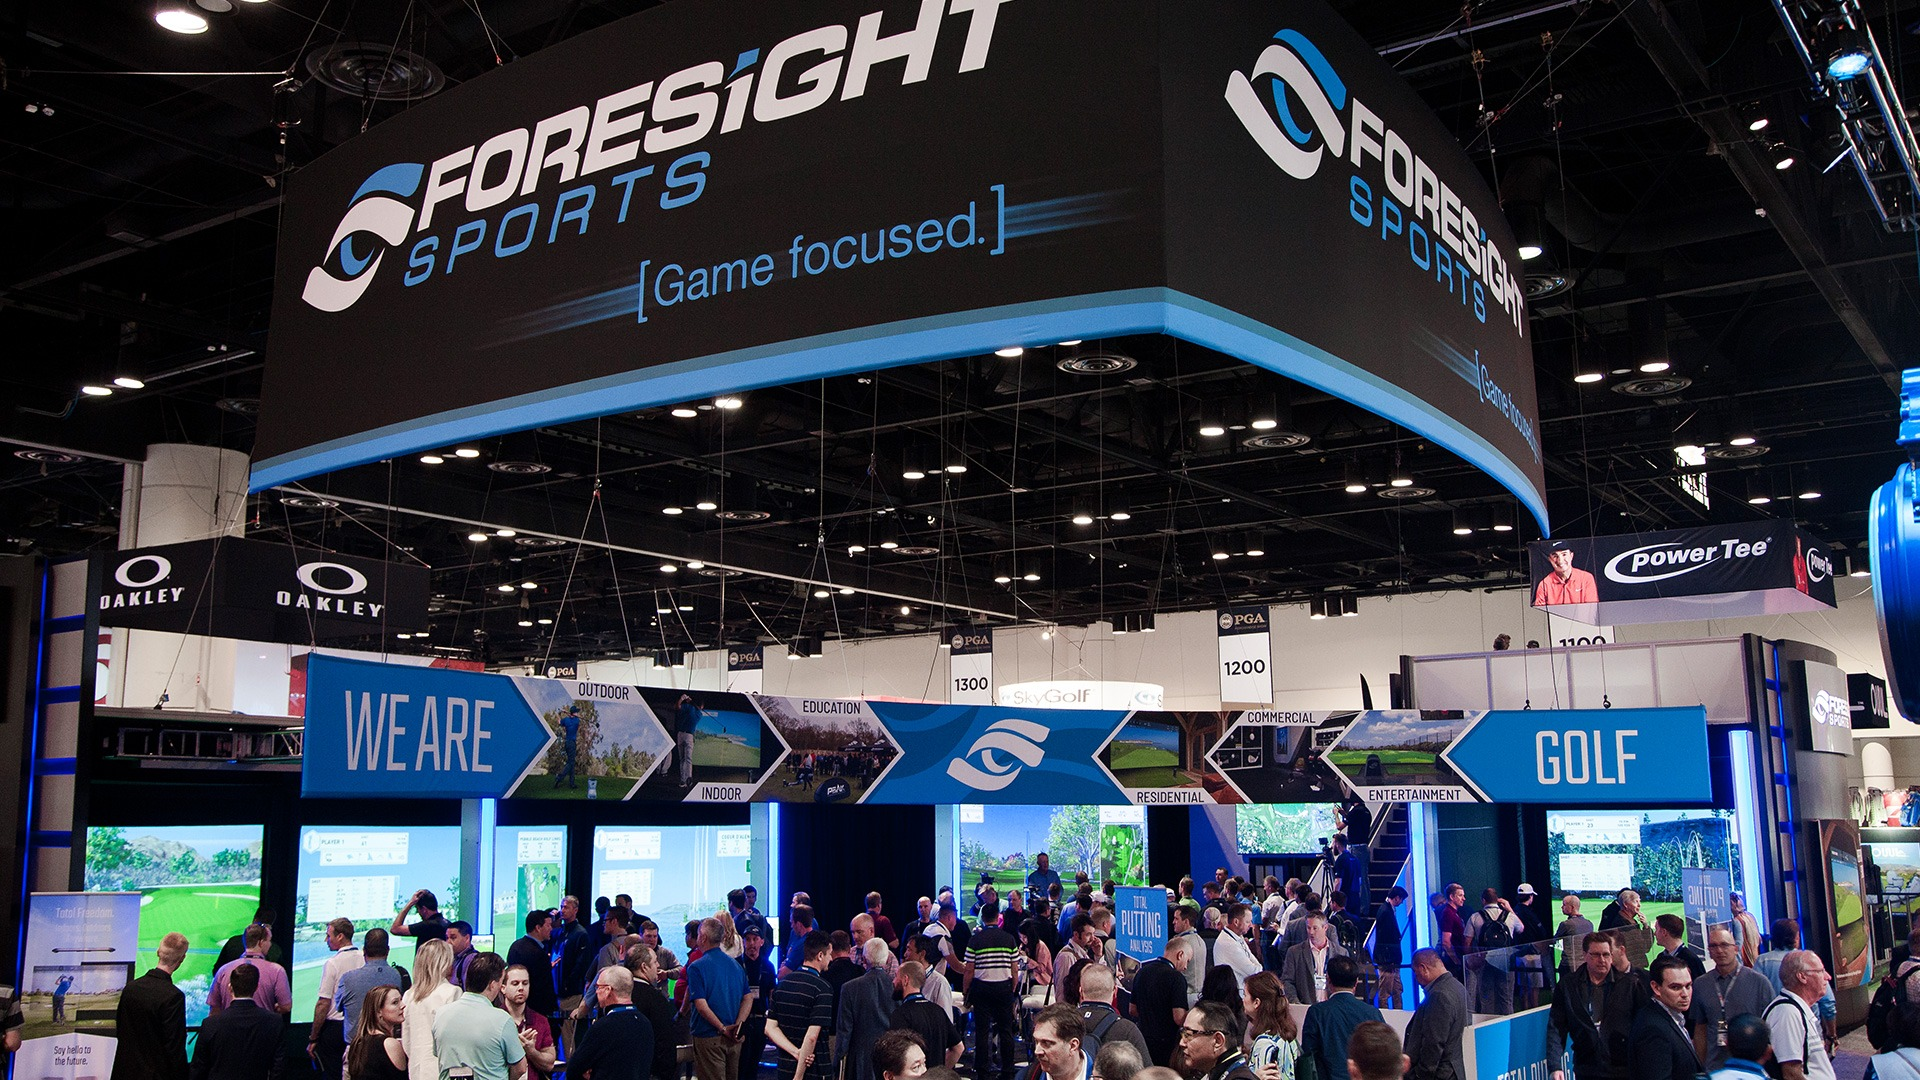 Did you catch Foresight at the PGA Show?